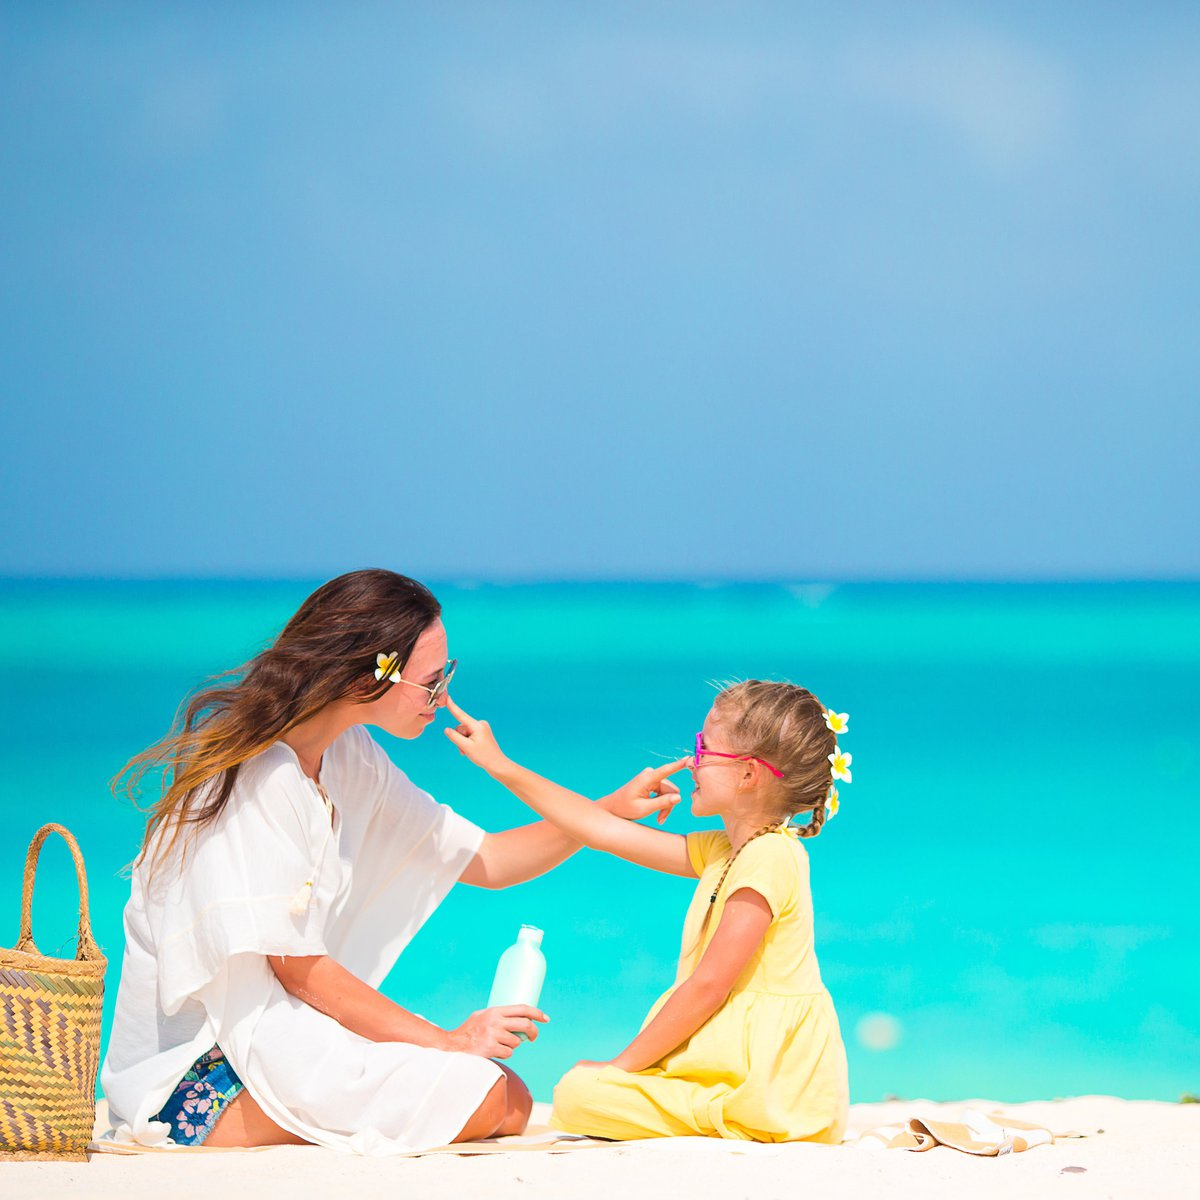 Get the low-down on sunscreen